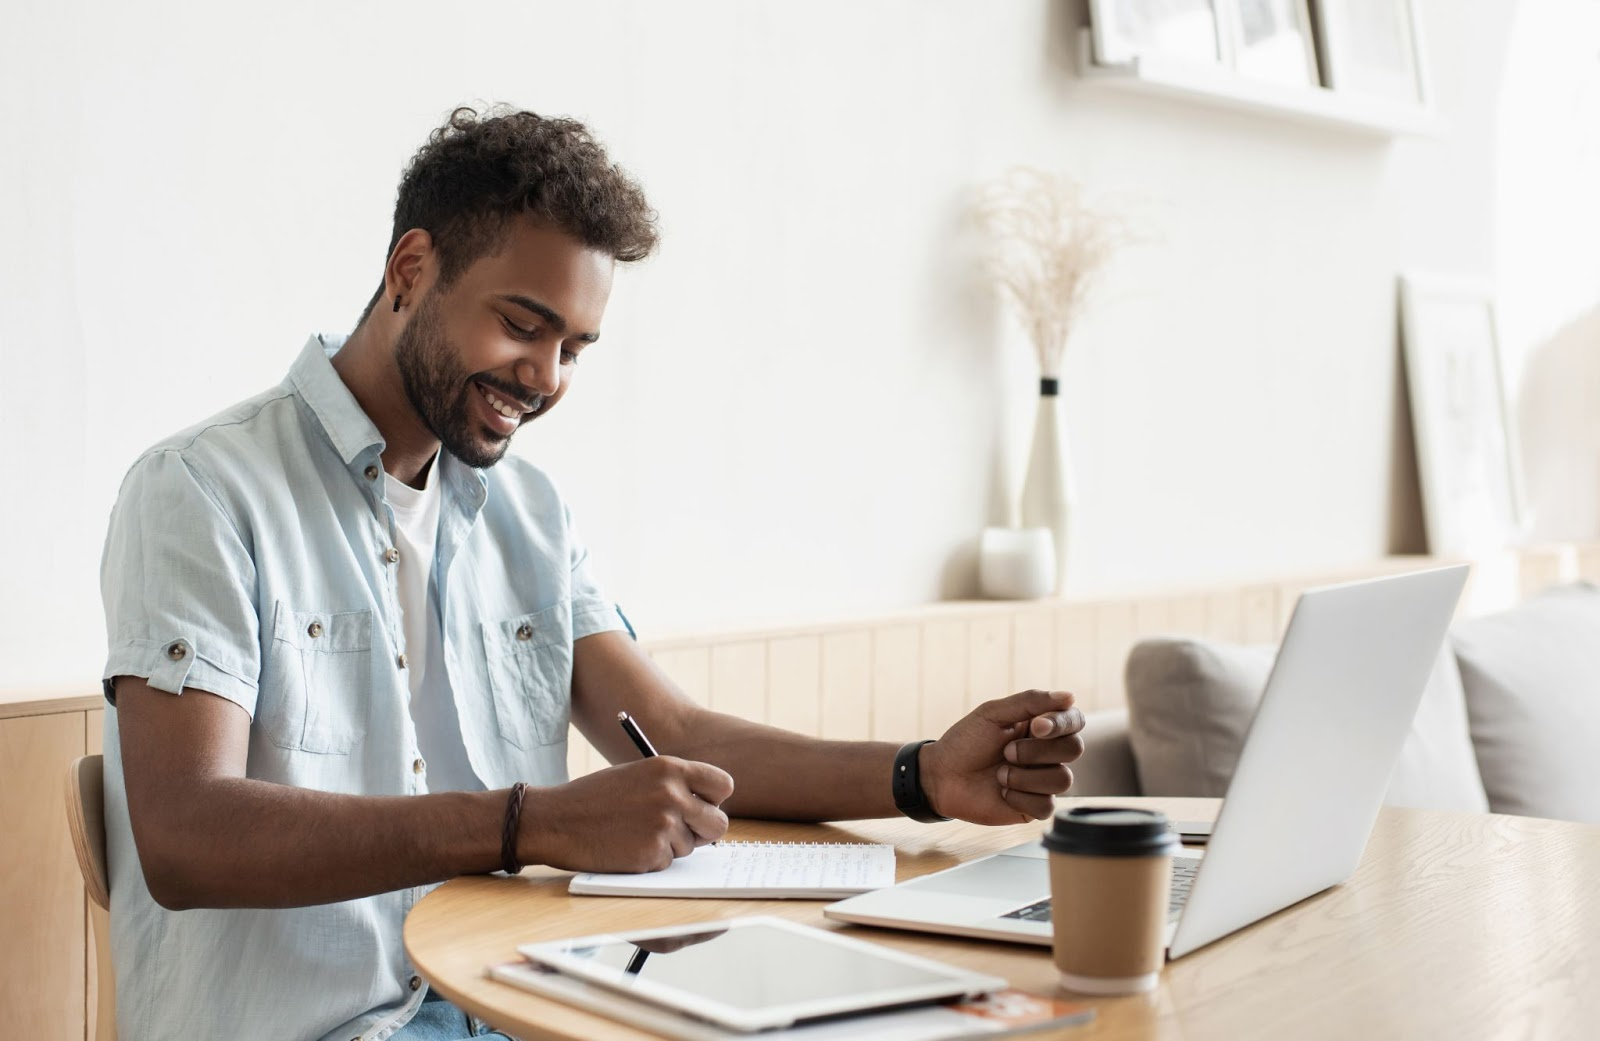 SaaS marketing: Smiling man writing on his notebook with his laptop in front of him